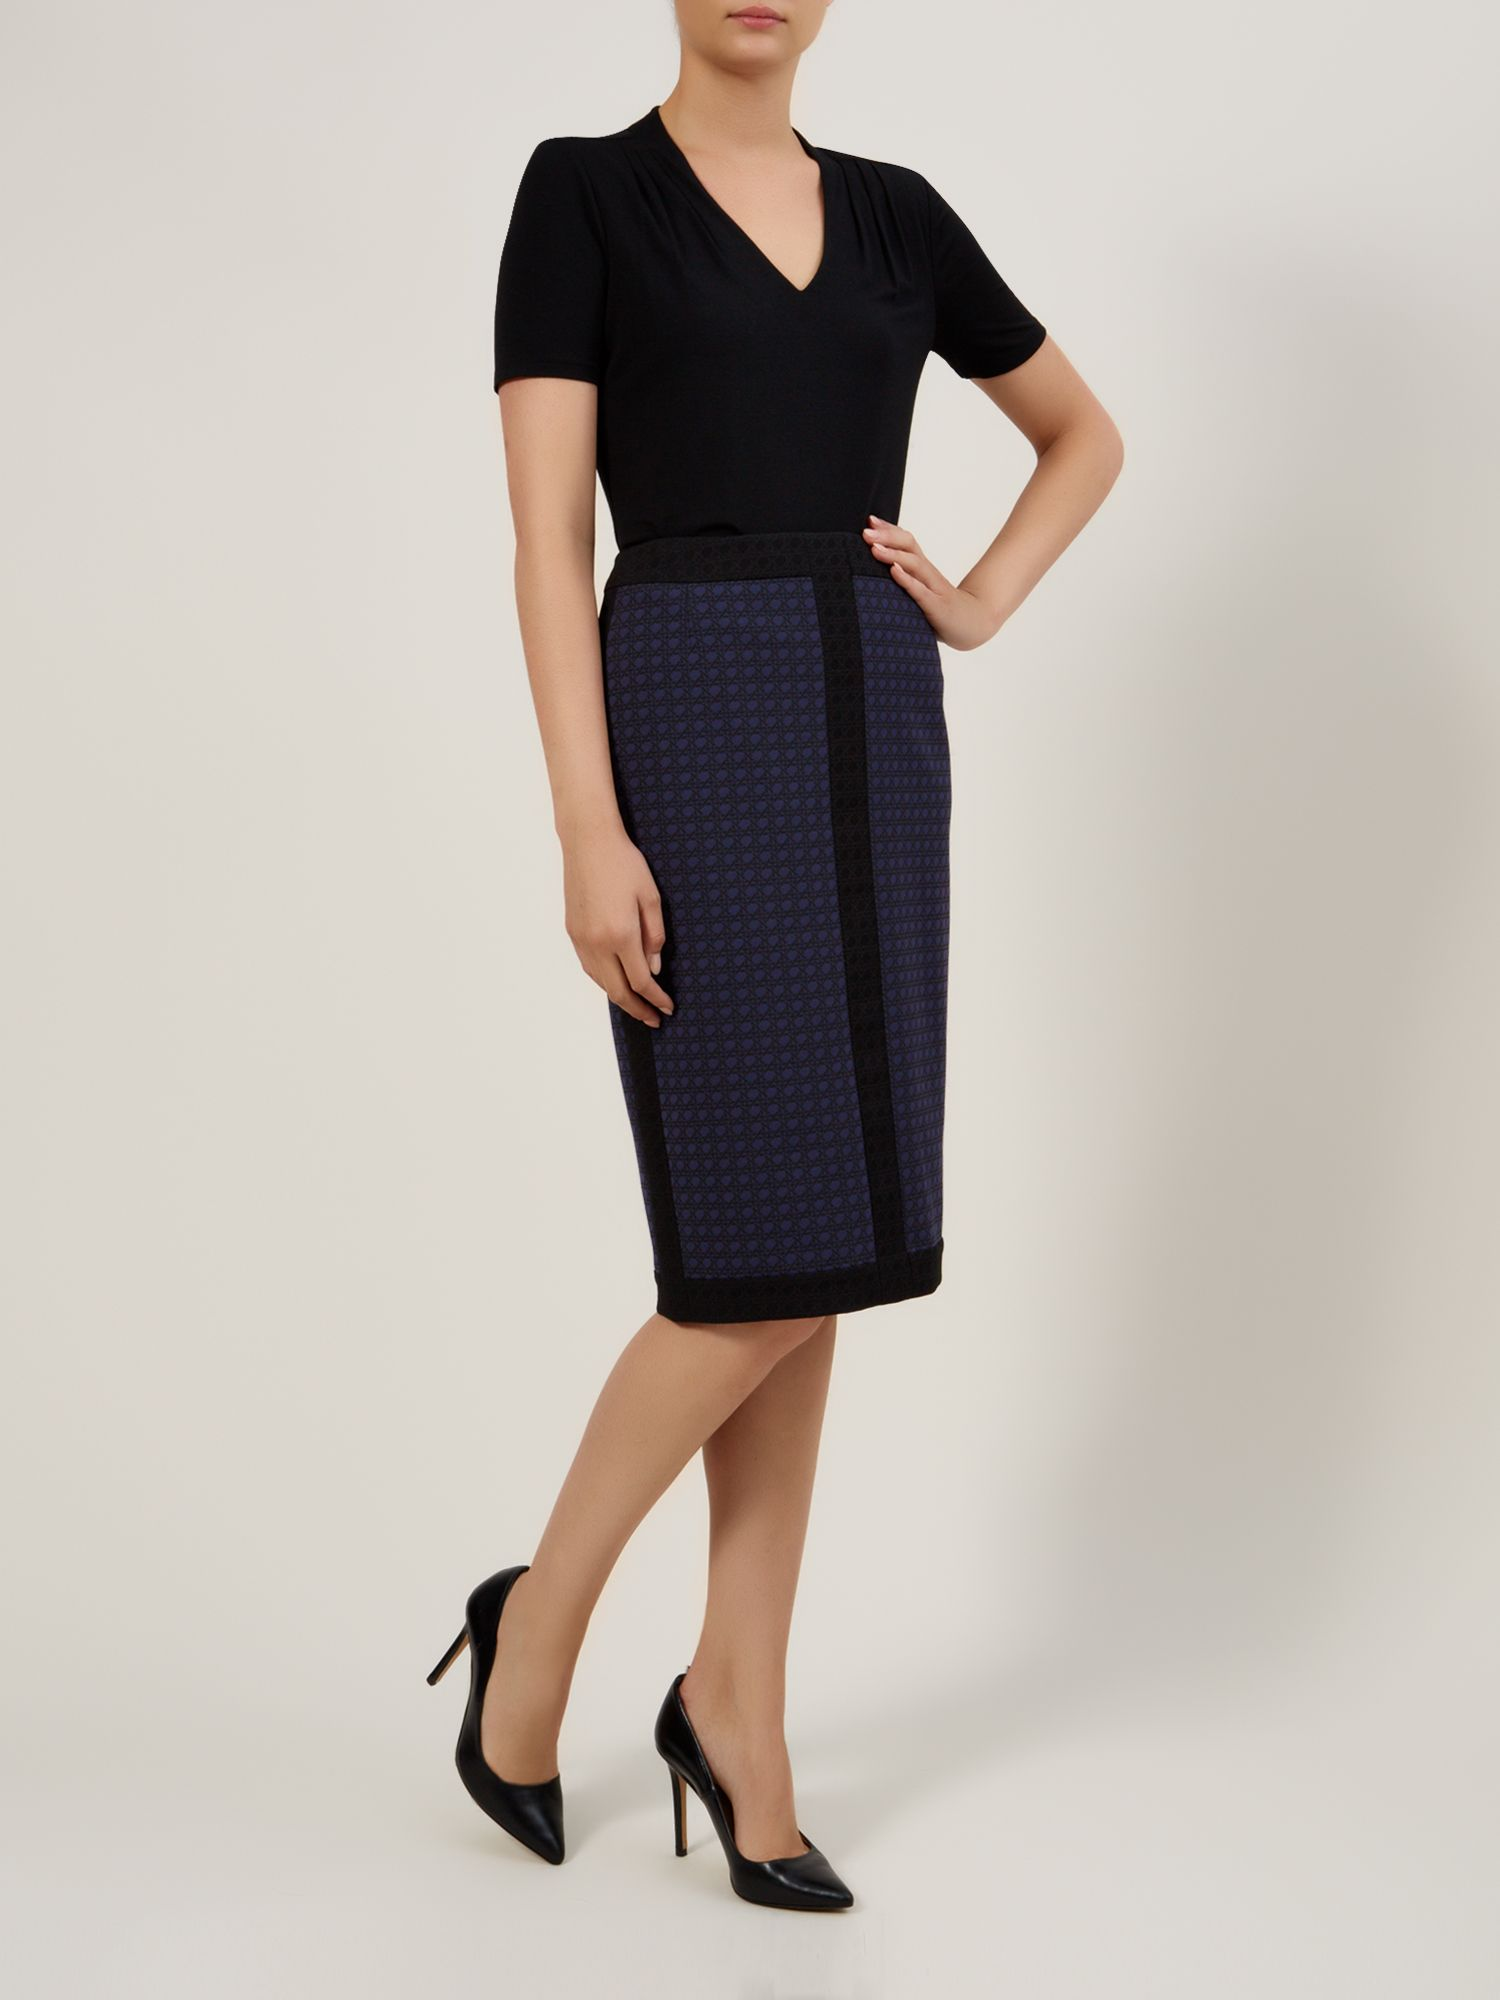 Navy & black jacquard skirt